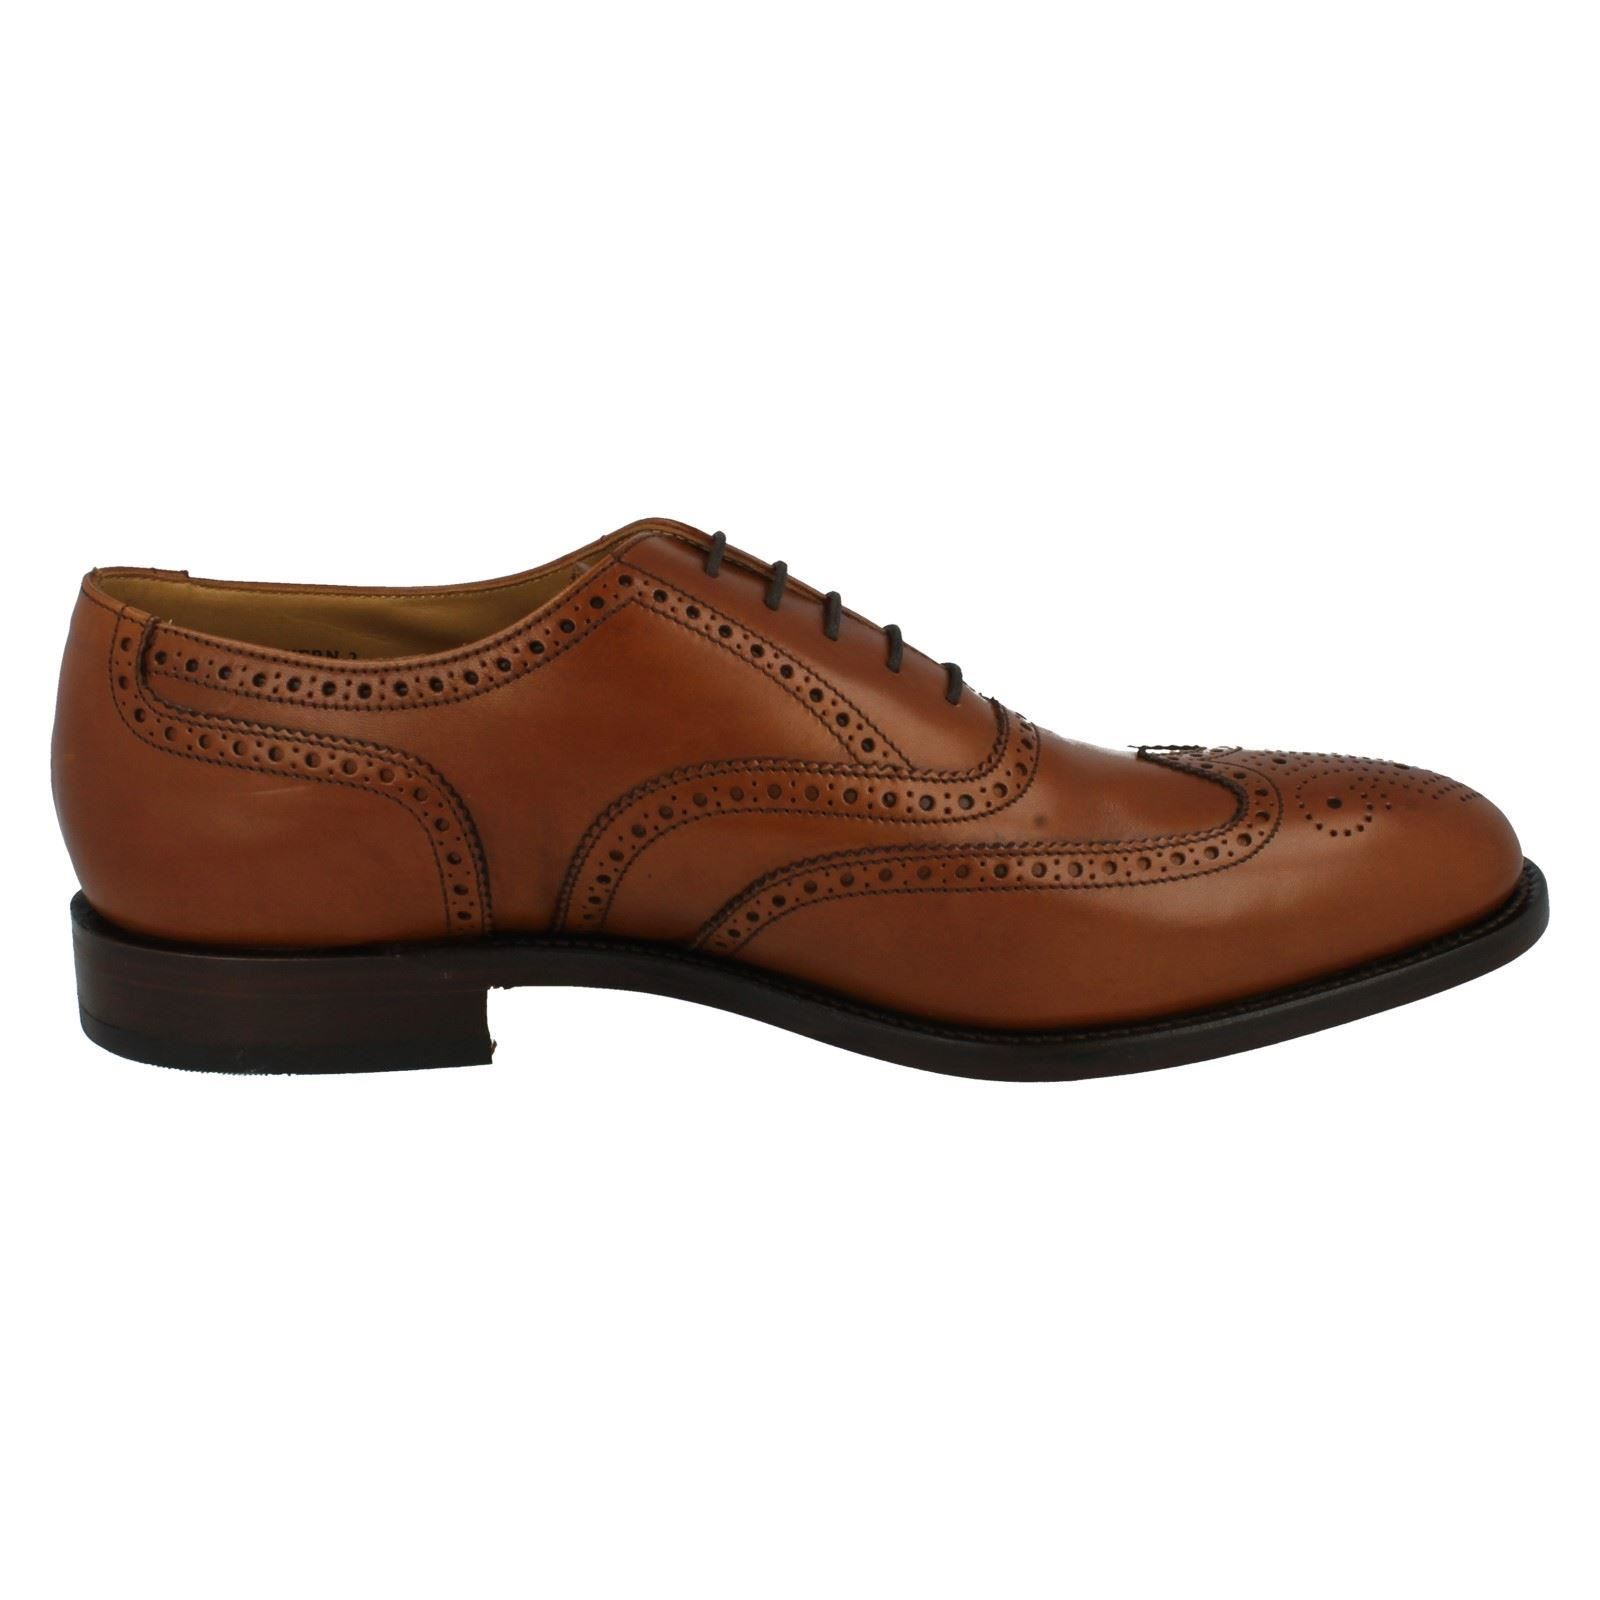 Mens Formal Loake Formal Mens Leder Brogue Schuhes Severn2 8b40d1